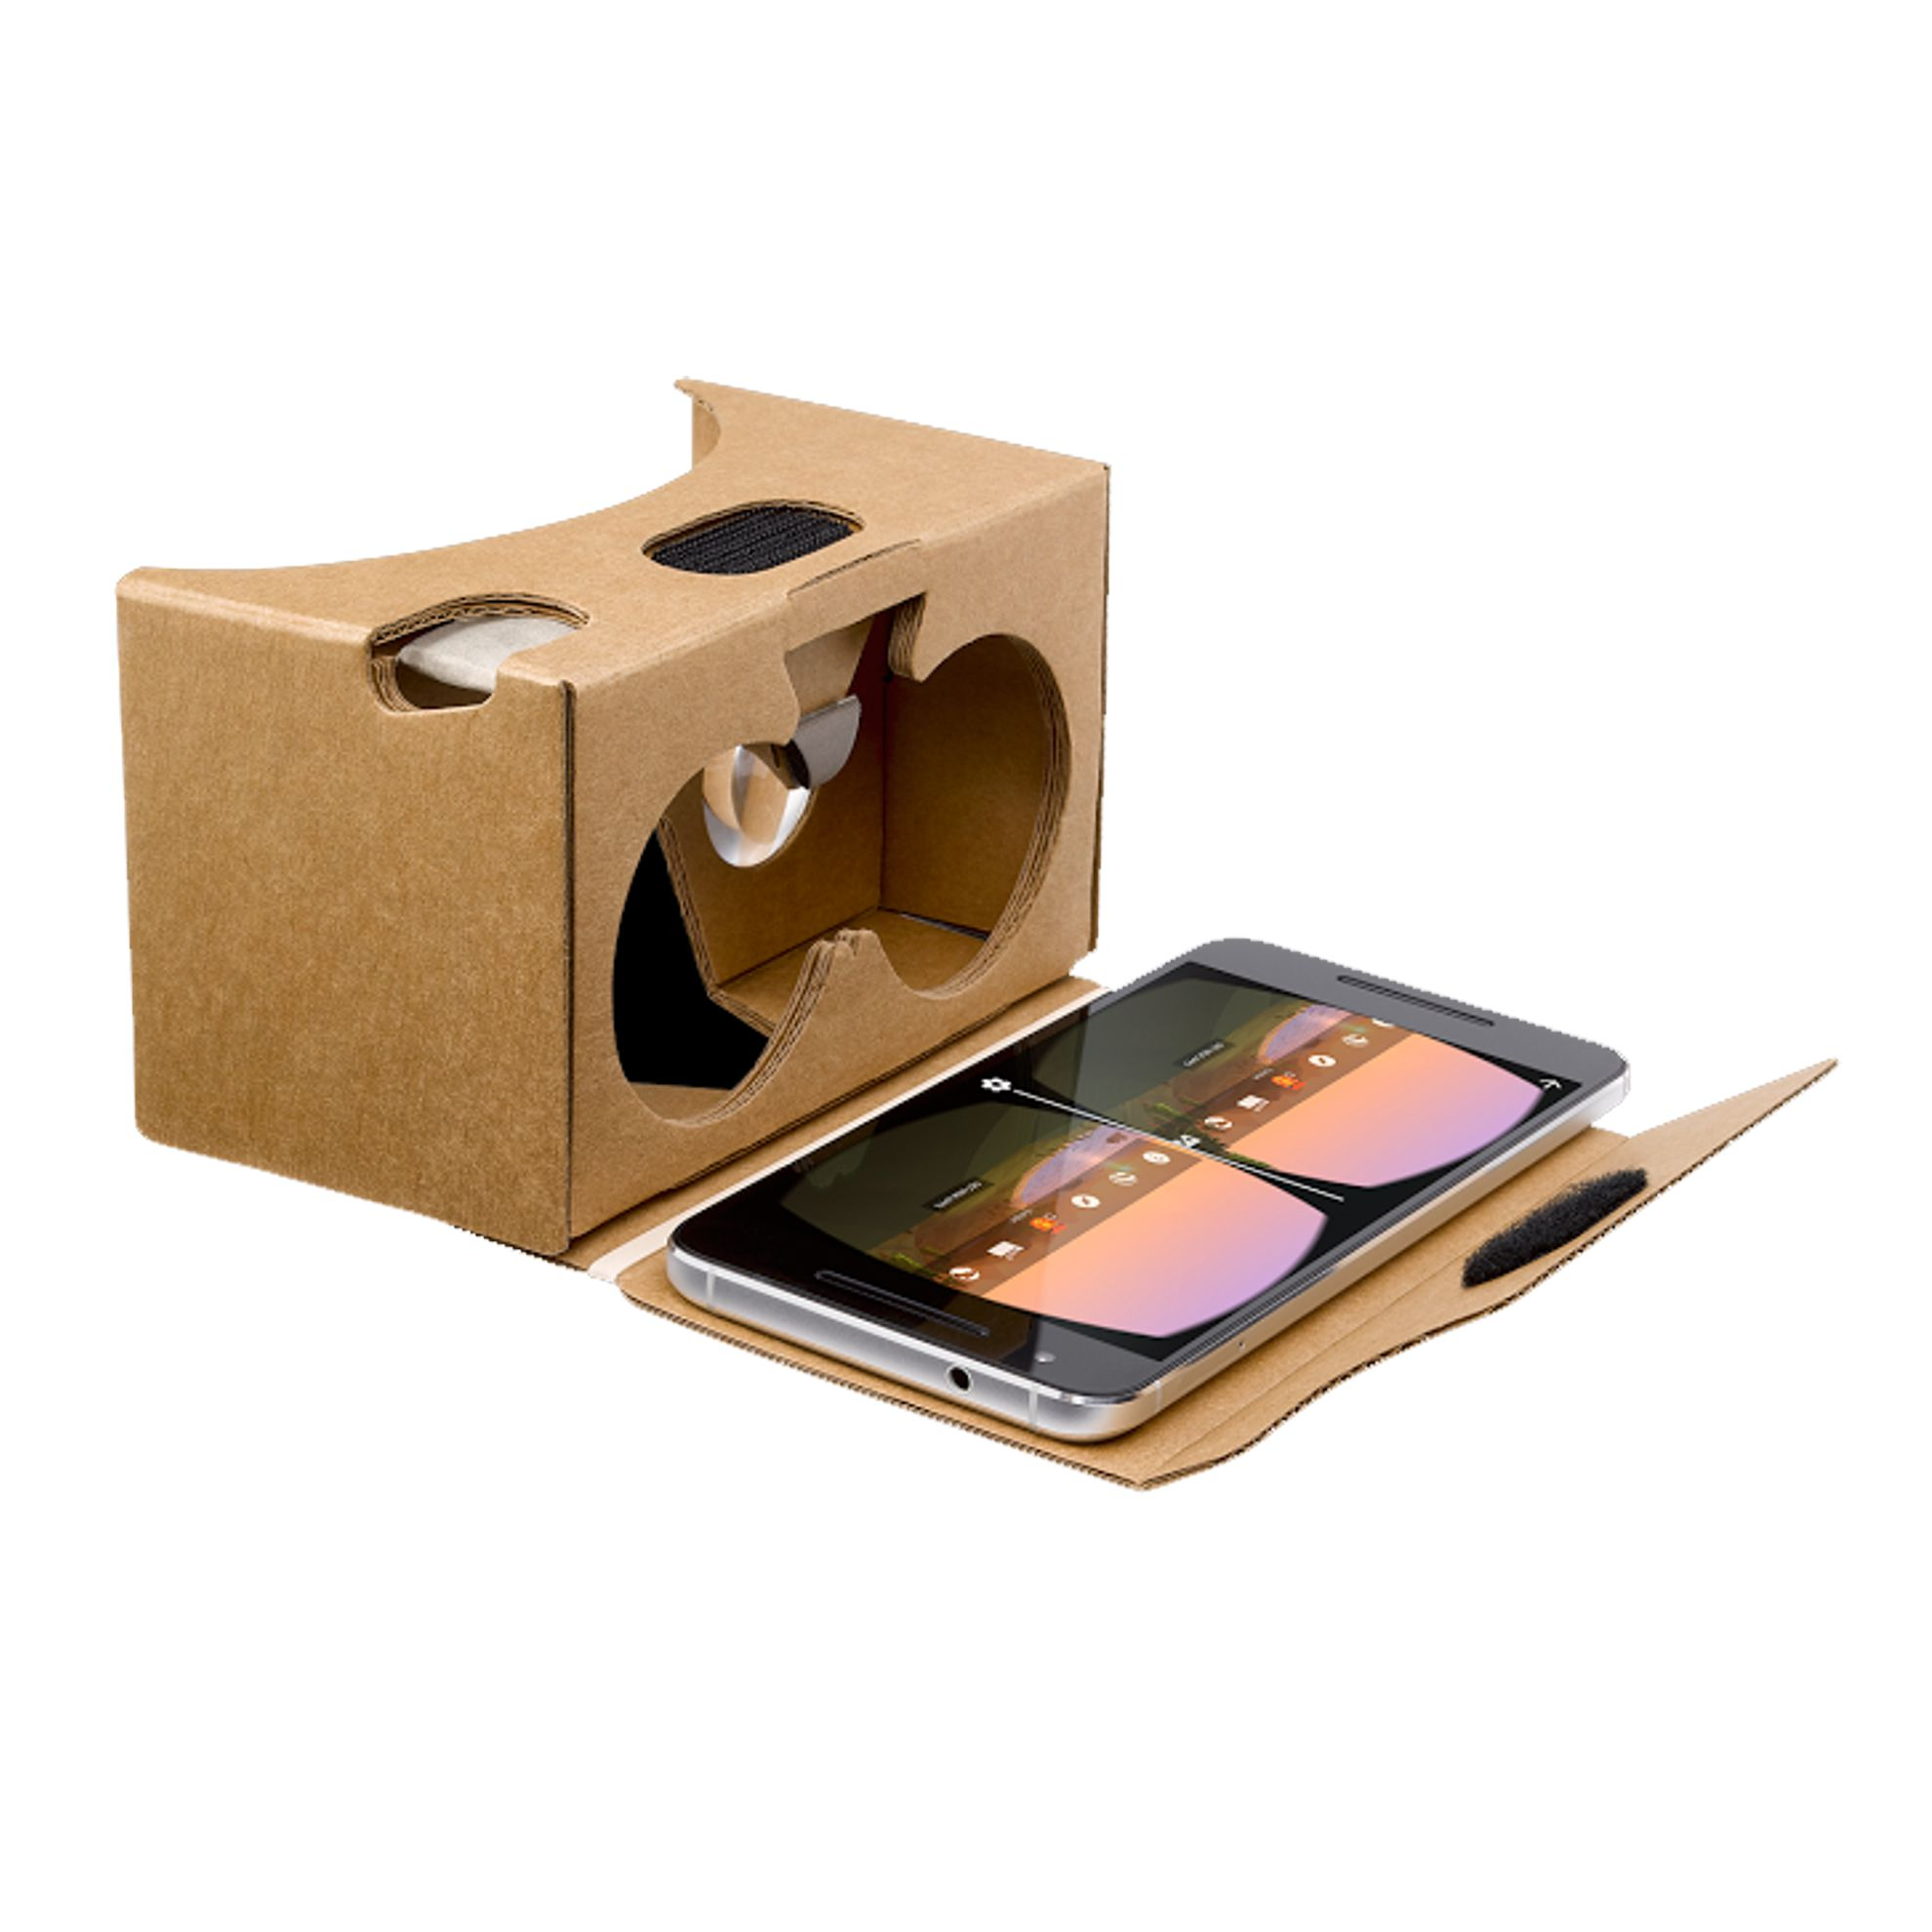 Google cardboard virtual reality headset version 2 virtual google cardboard virtual reality headset version 2 publicscrutiny Image collections